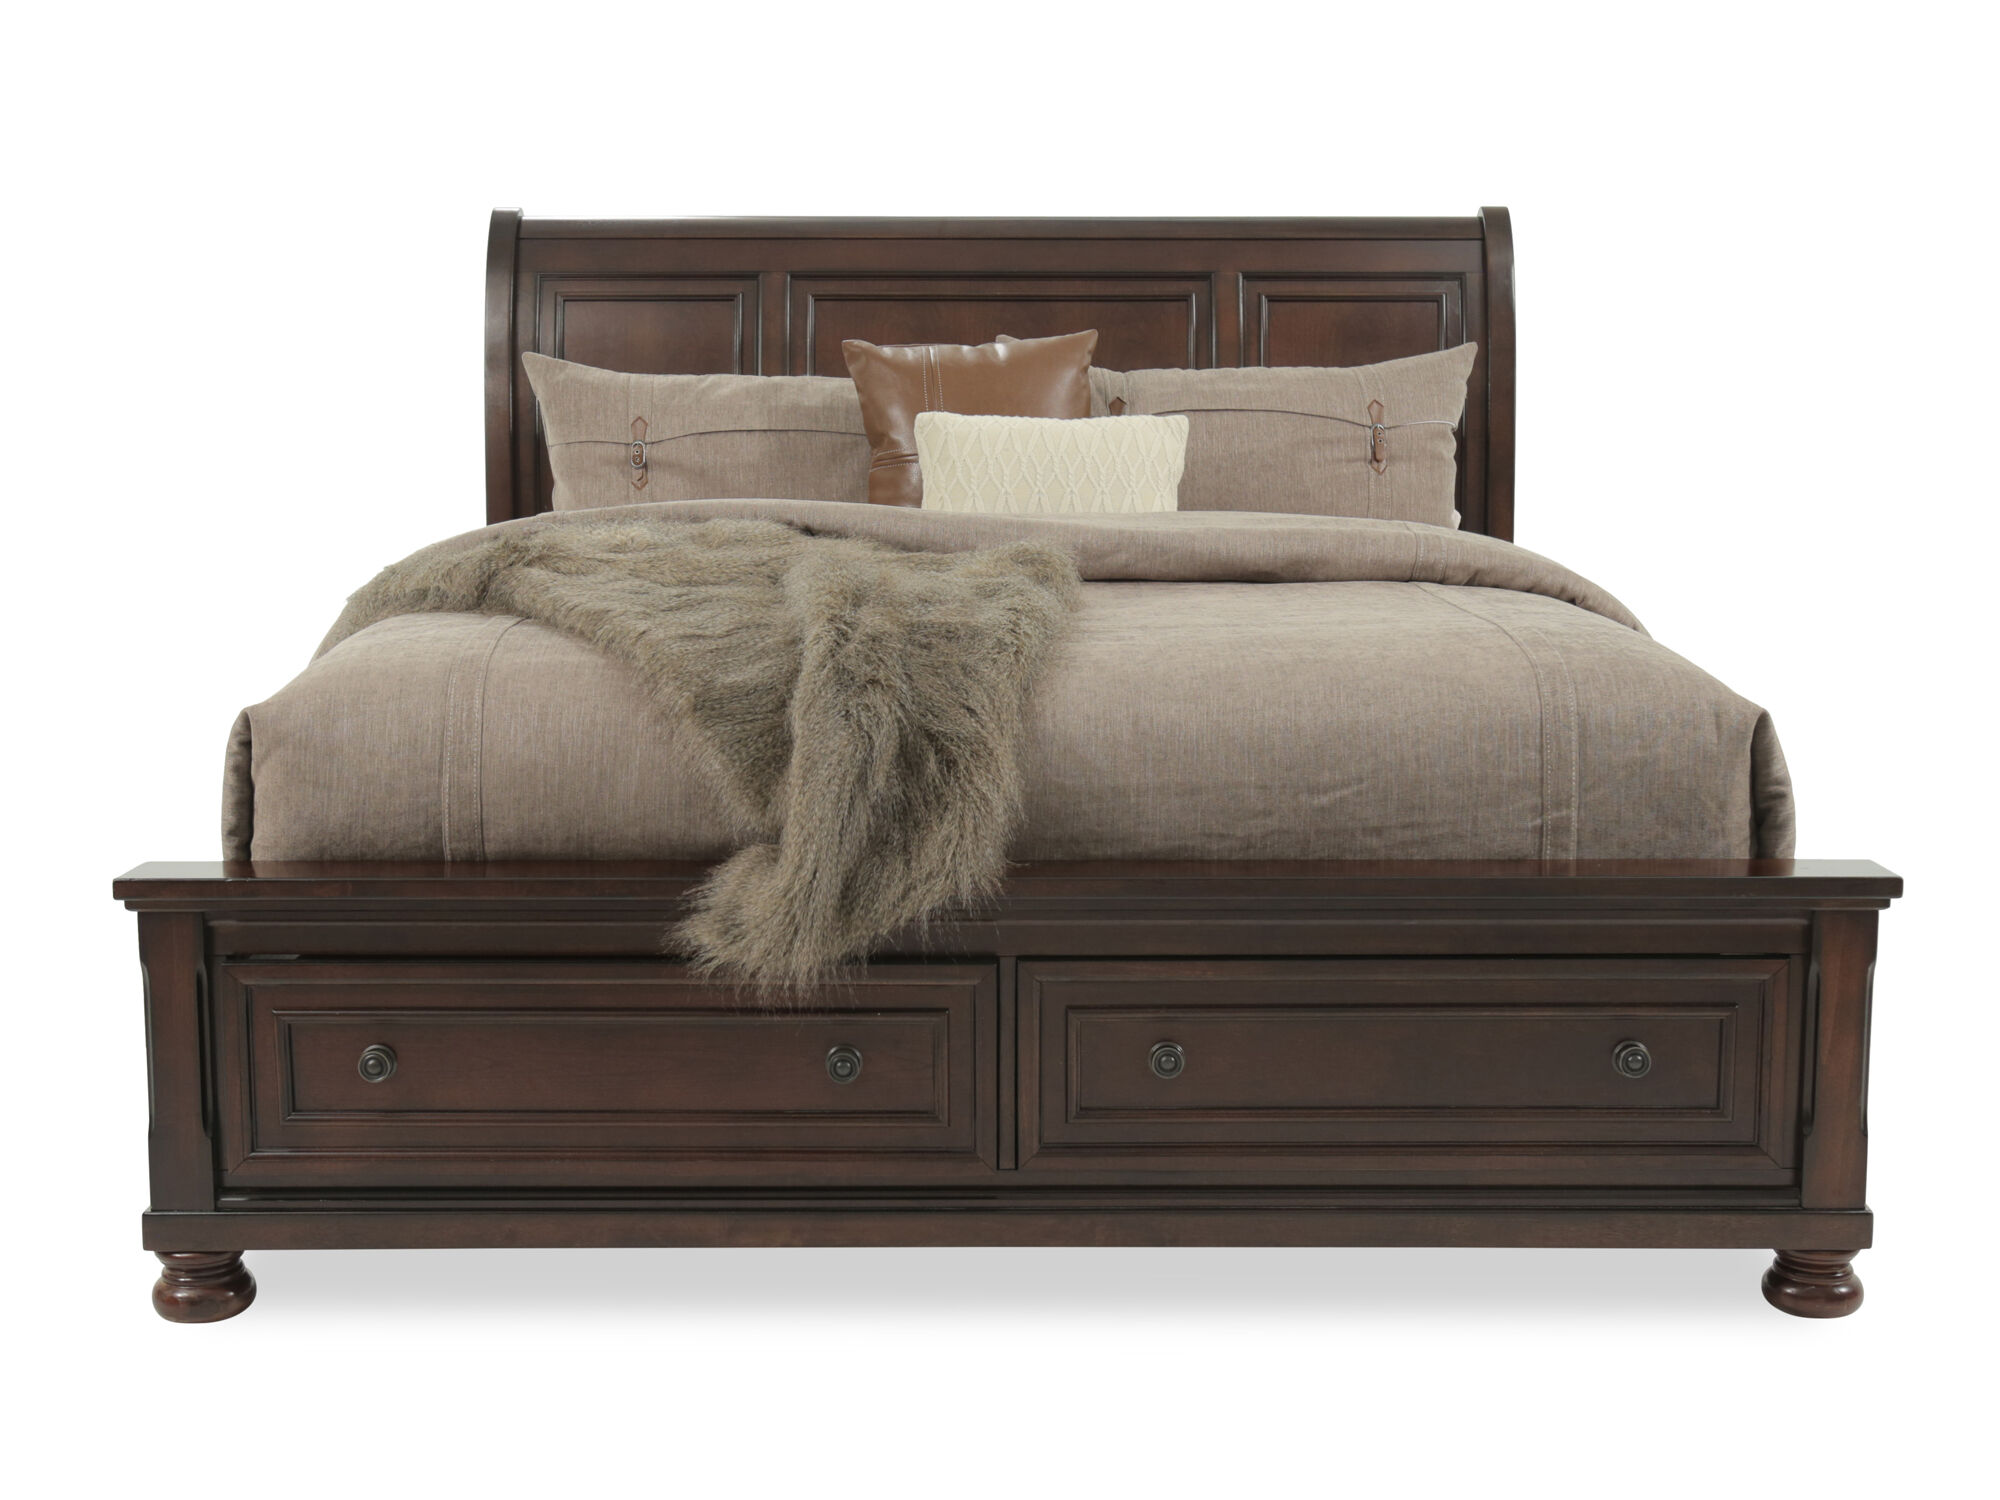 57 Traditional Beveled Sleigh Bed In Dark Brown Mathis Brothers